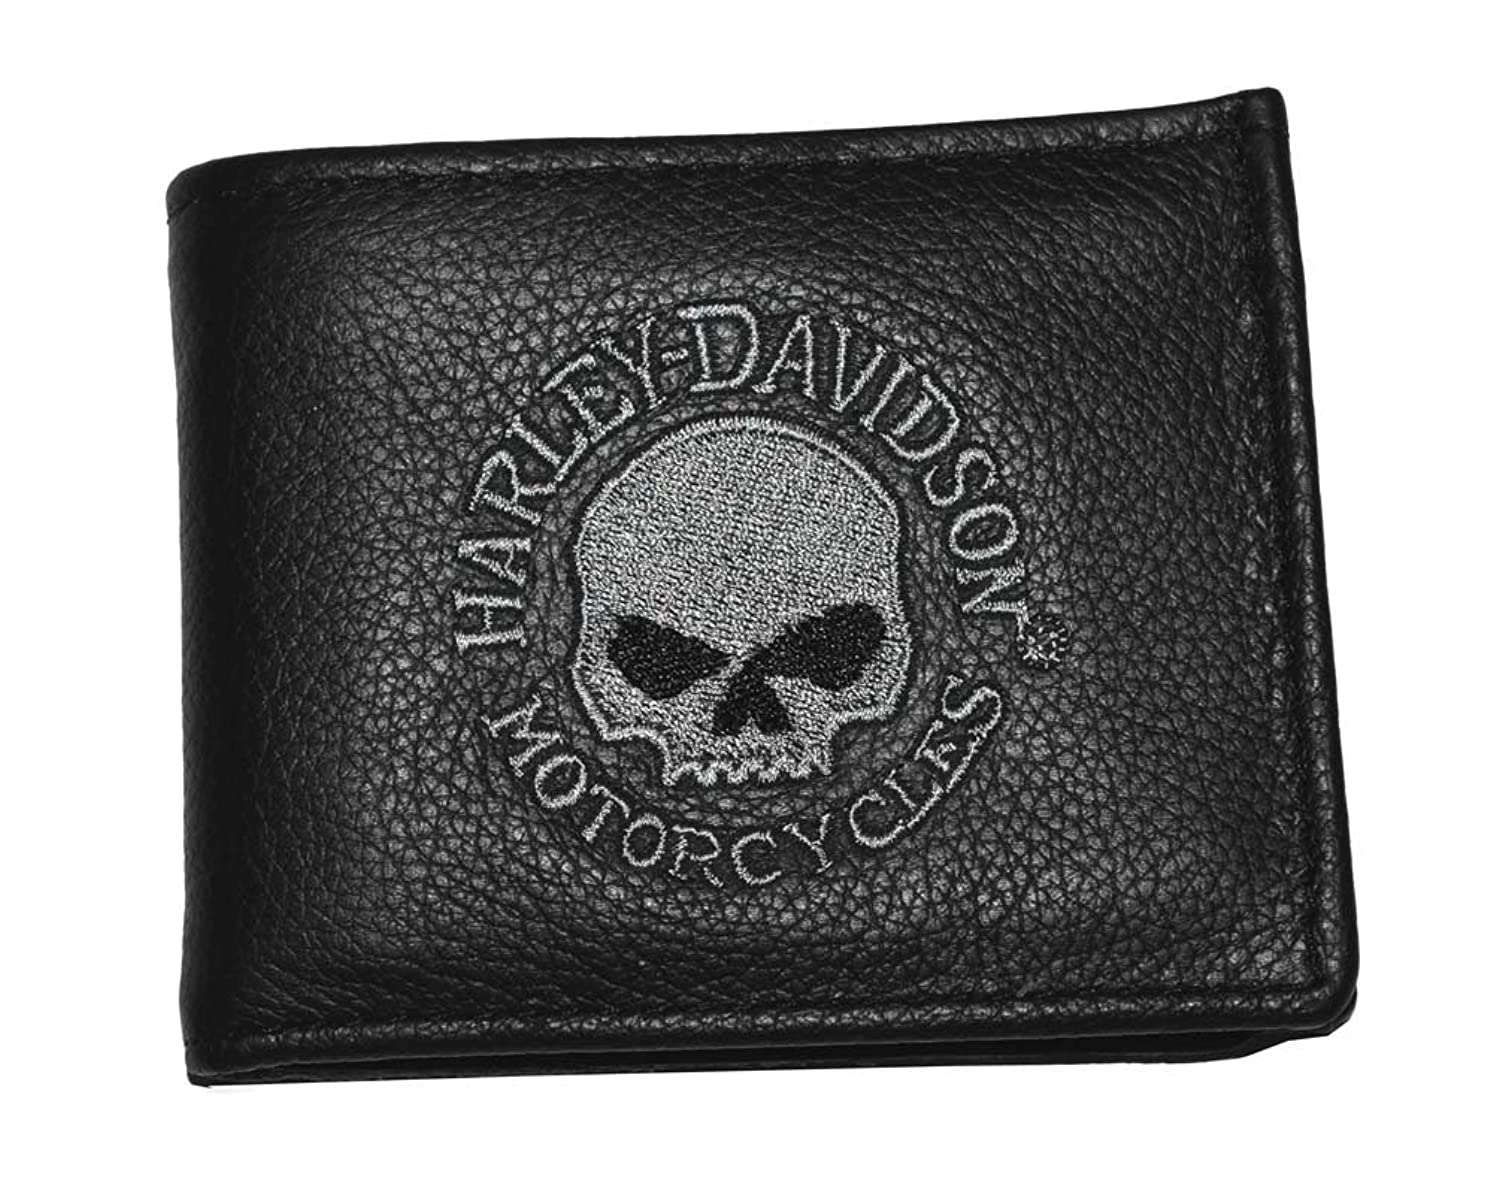 Embroidered Leather Wallet Wallet Black Leather